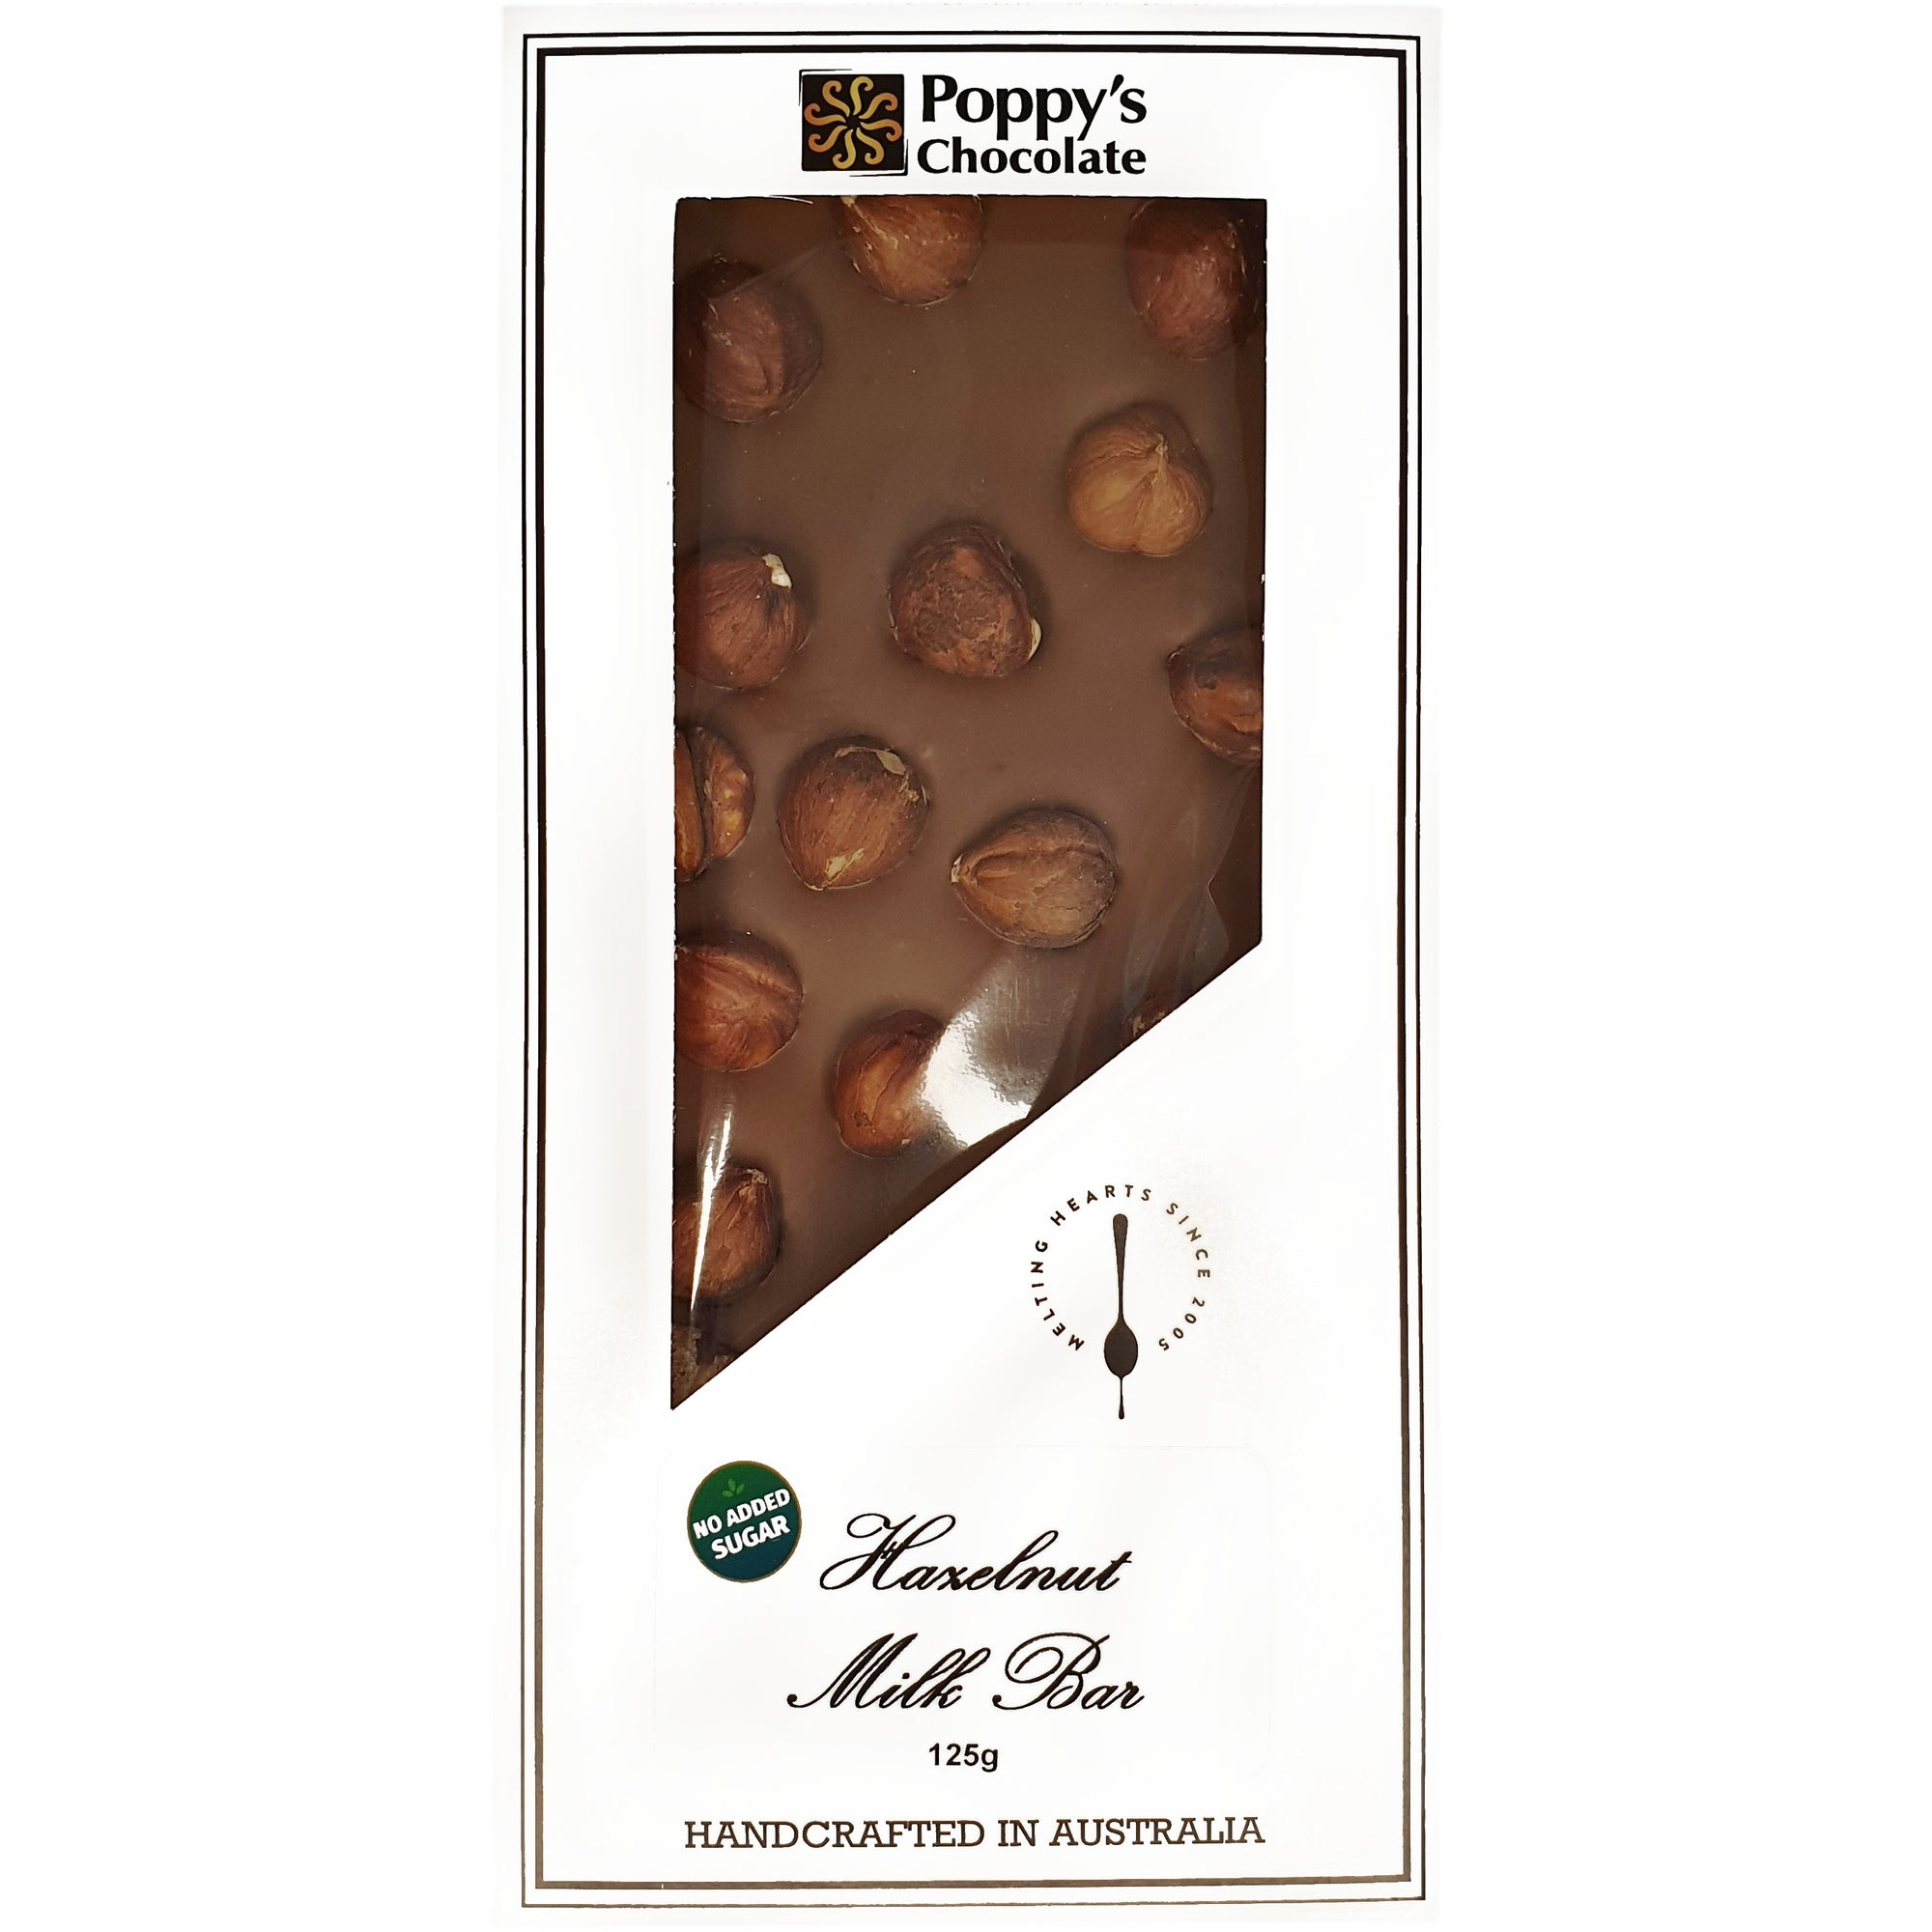 No Added Sugar Hazelnut and Milk Chocolate Block 125g